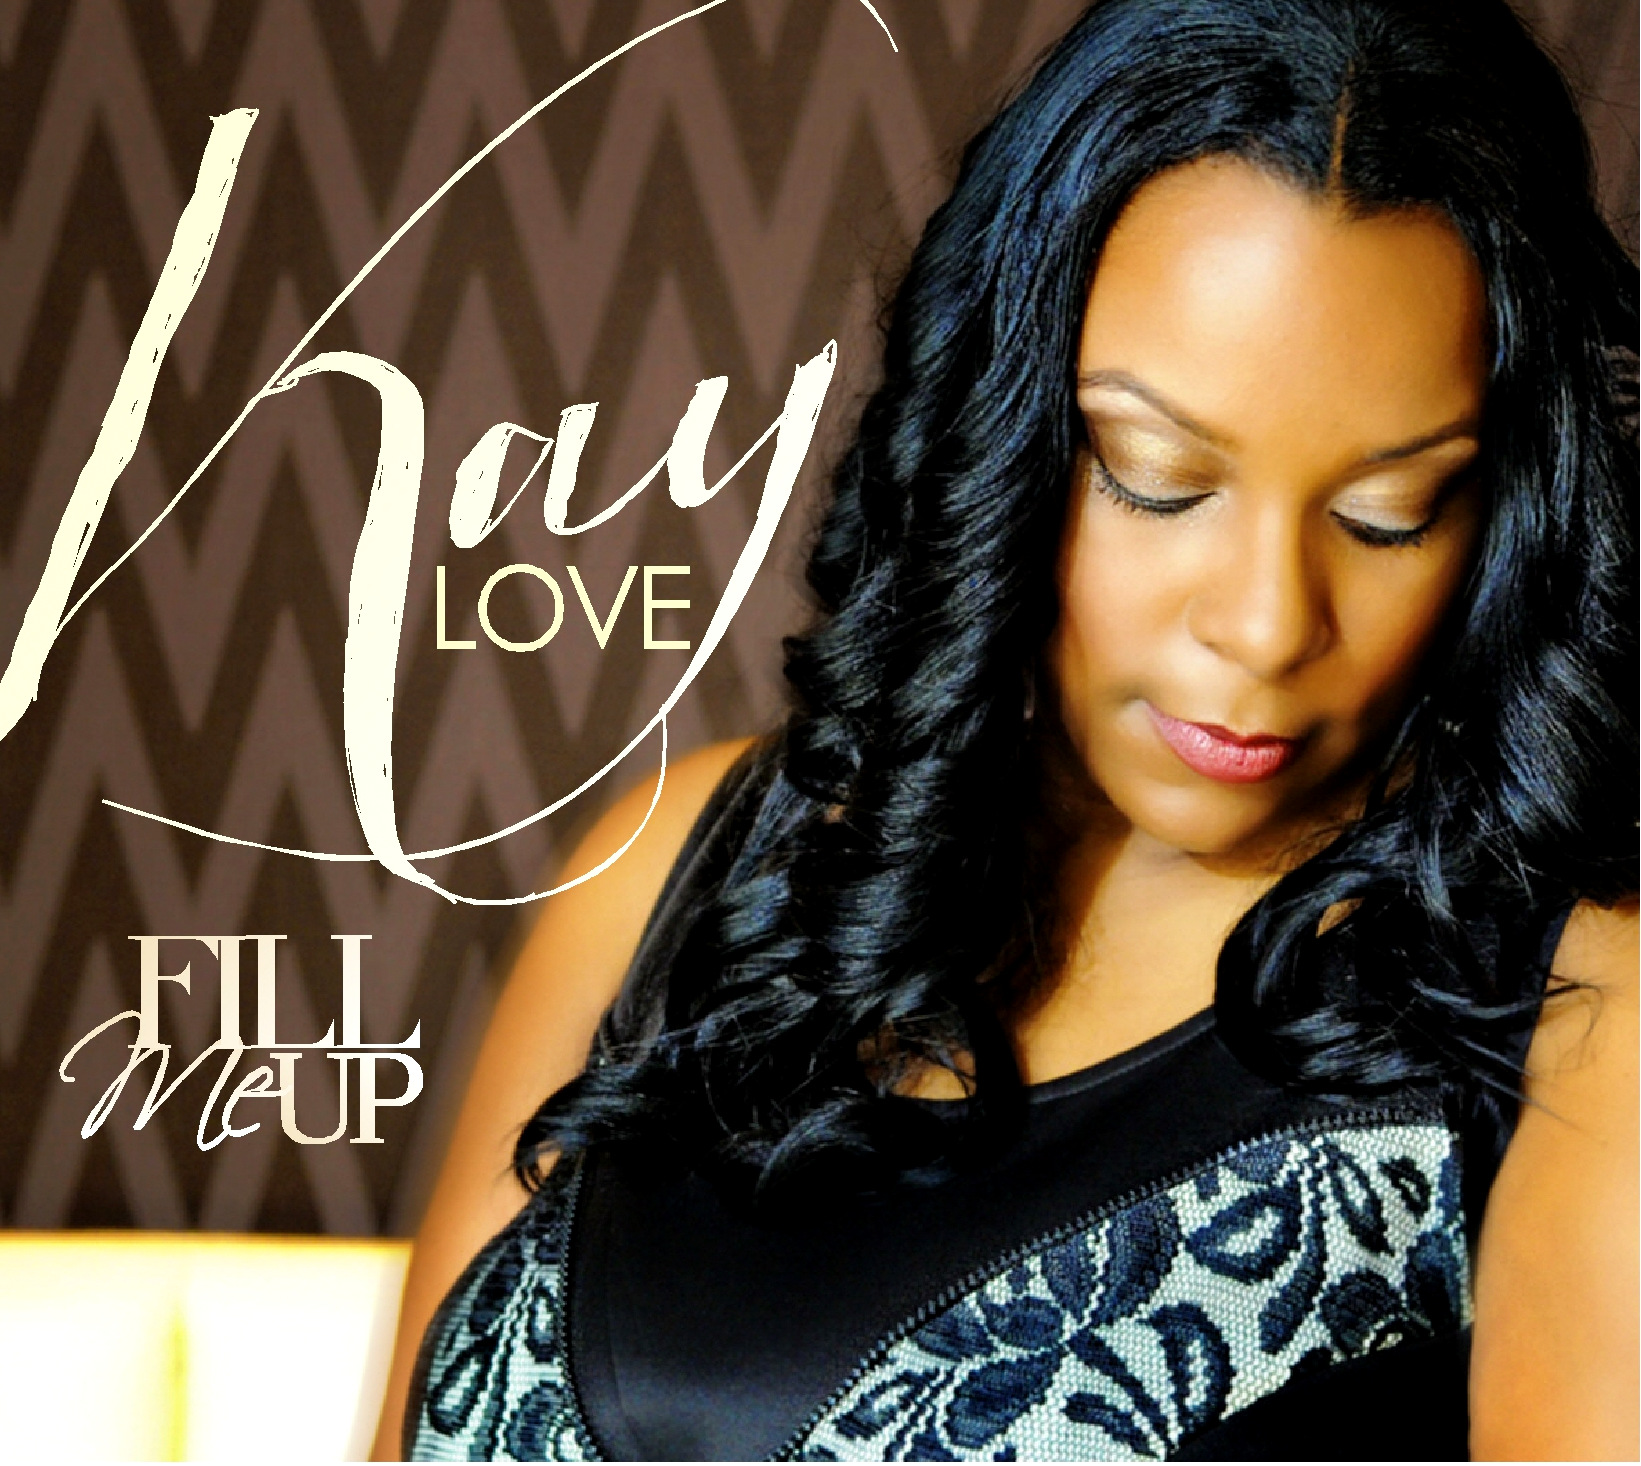 Kay Love Cover Front-2.jpg